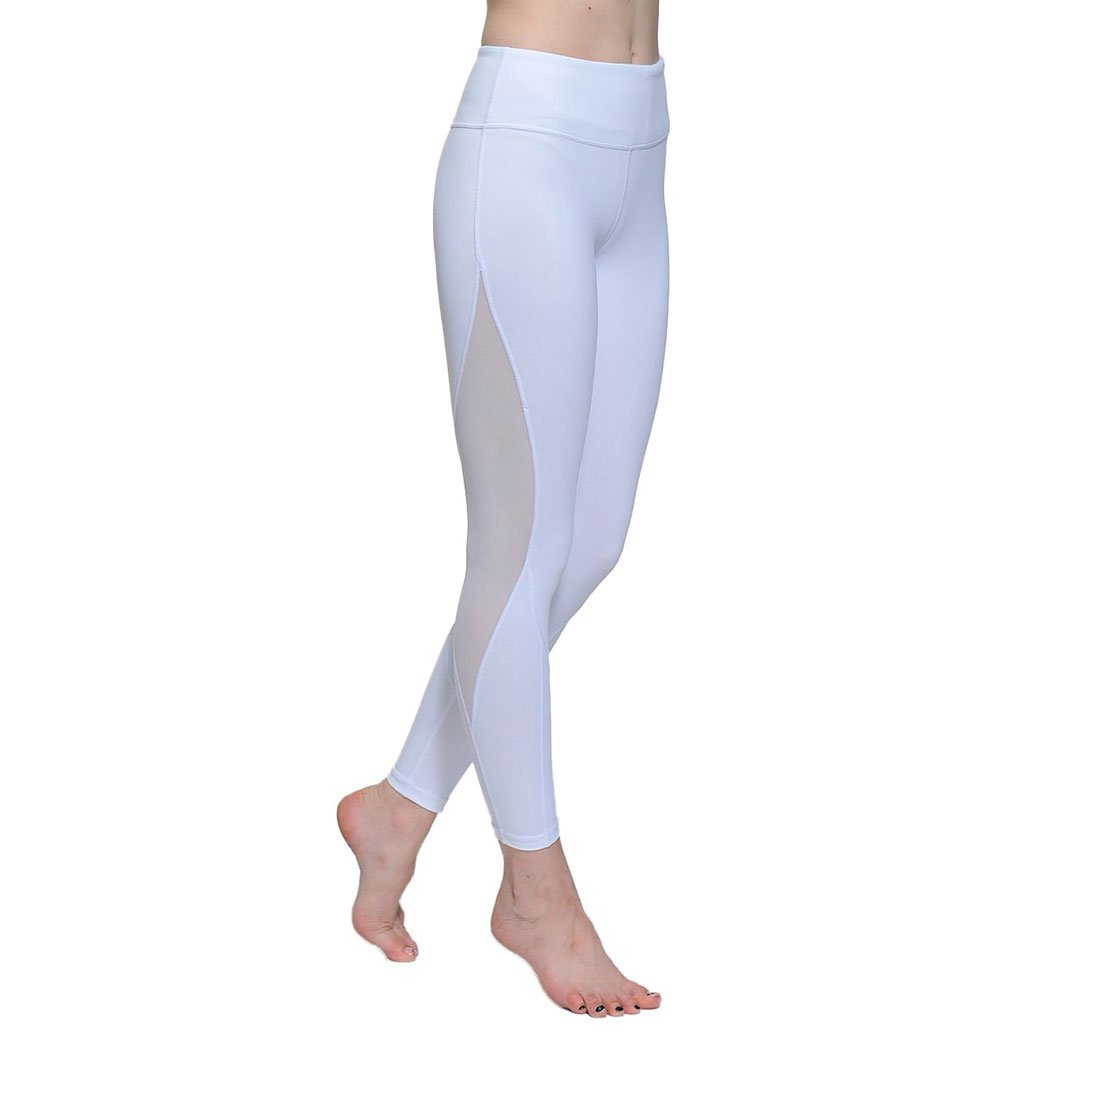 Chikool Women White Mesh Yoga Pants Athletic Workout Capri Leggings with Side Pocket